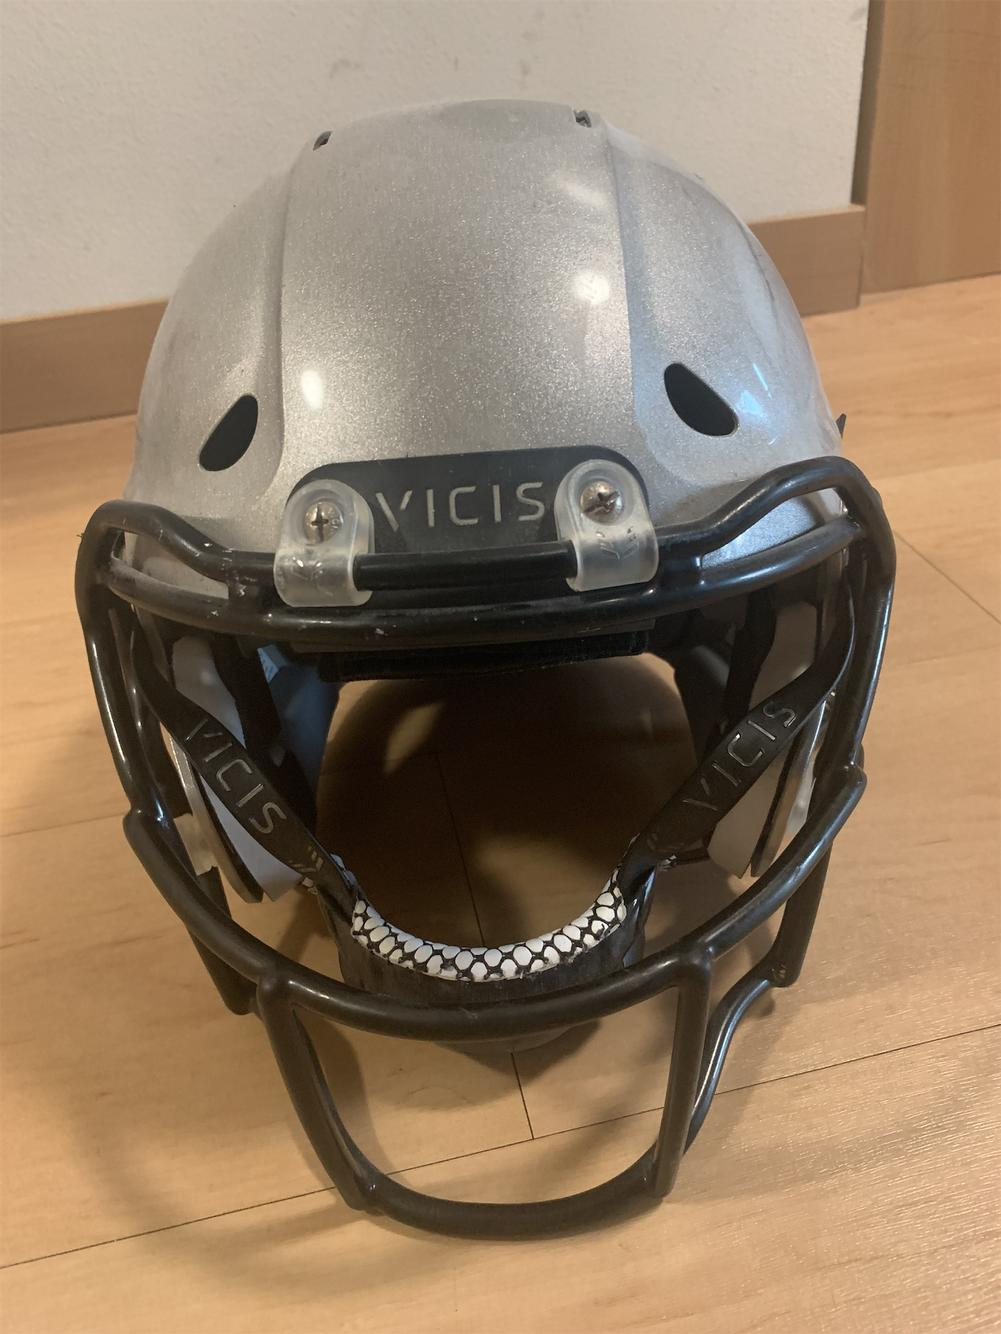 Vicis Zero1 Youth Football Helmet : vicis, zero1, youth, football, helmet, Vicis, Youth, Small, Zero1, Helmet, Football, Protective